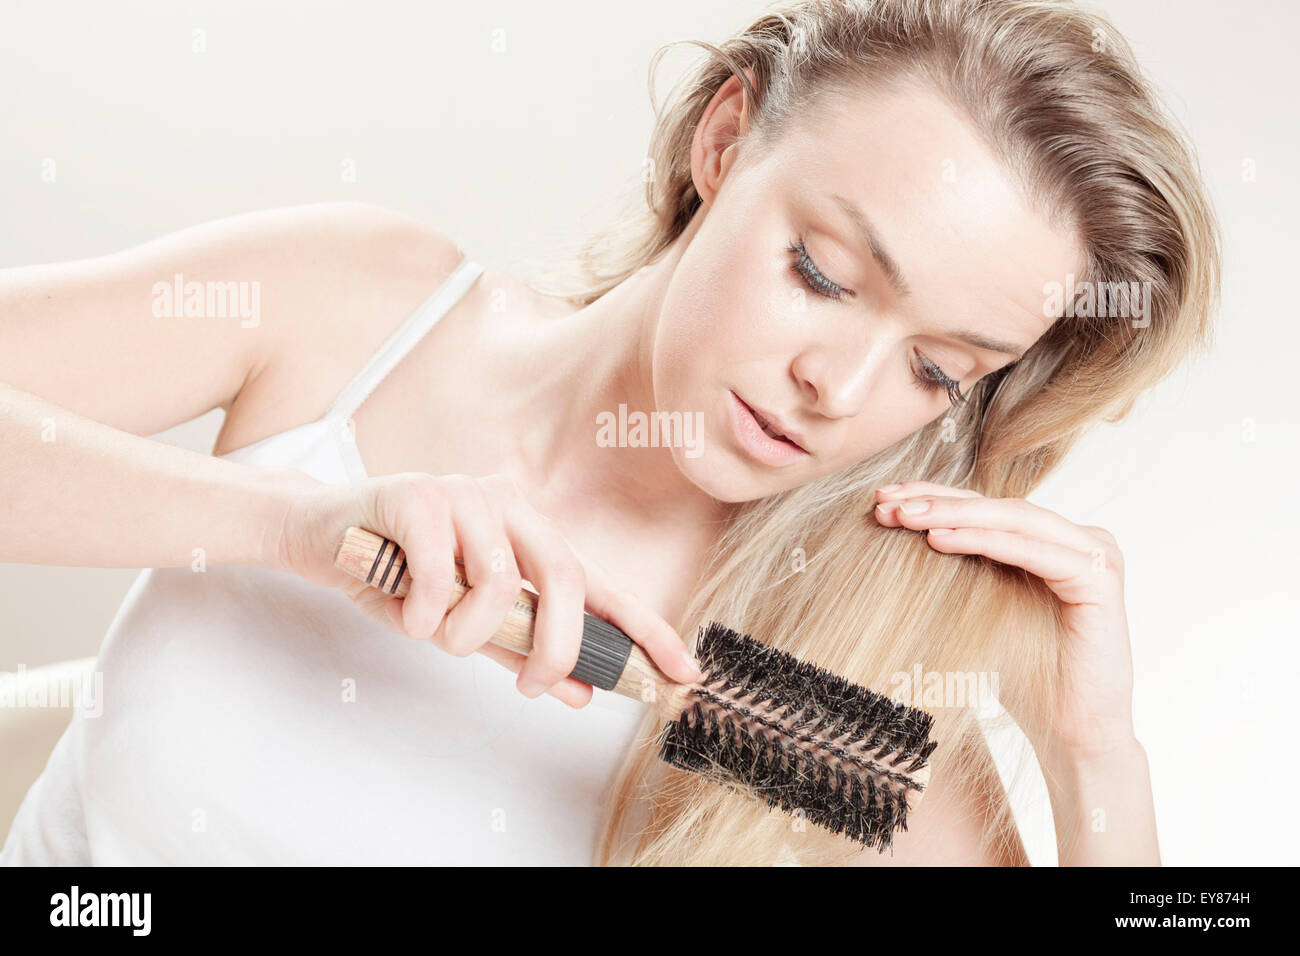 Young woman brushing her hair - Stock Image